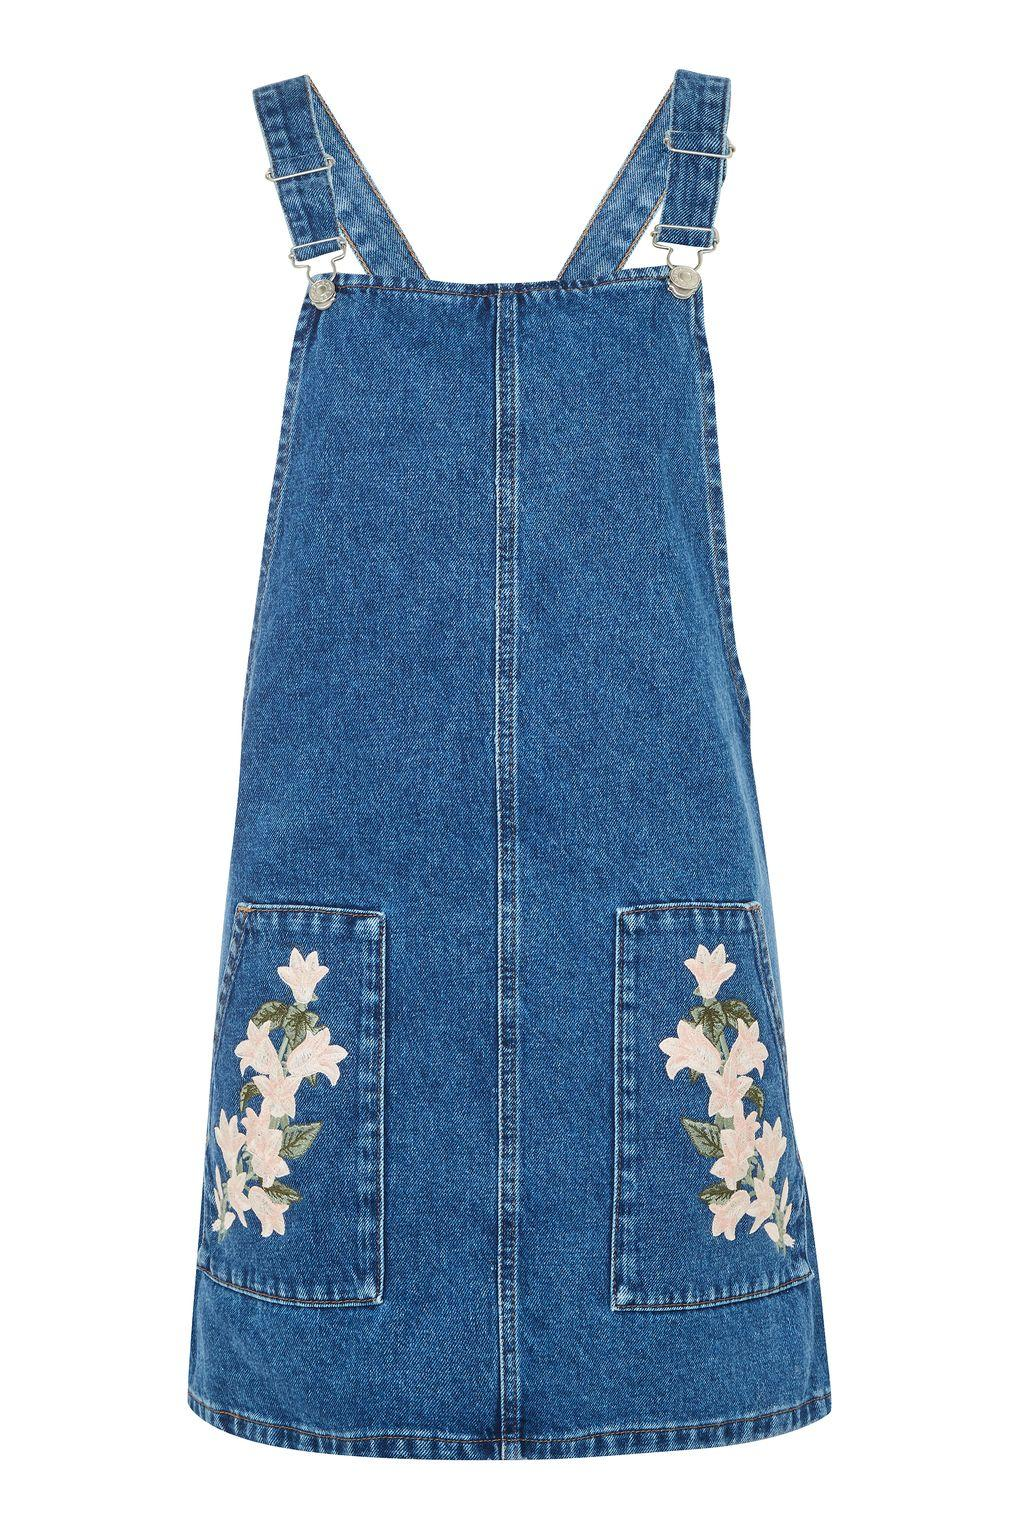 Topshop Tulip Embroidered Denim Pinafore Dress In Mid